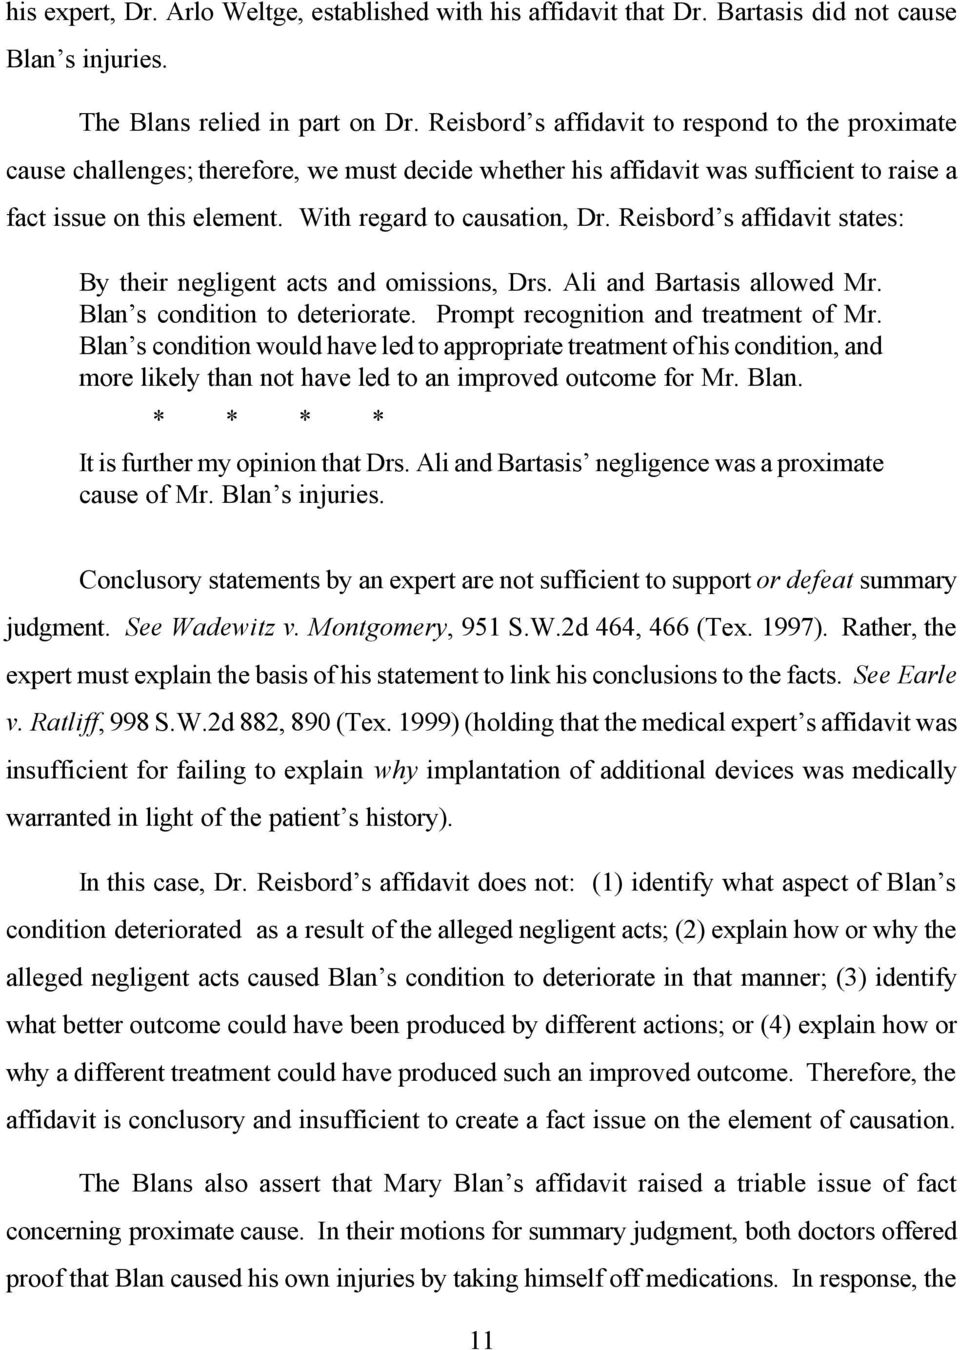 Reisbord s affidavit states: By their negligent acts and omissions, Drs. Ali and Bartasis allowed Mr. Blan s condition to deteriorate. Prompt recognition and treatment of Mr.